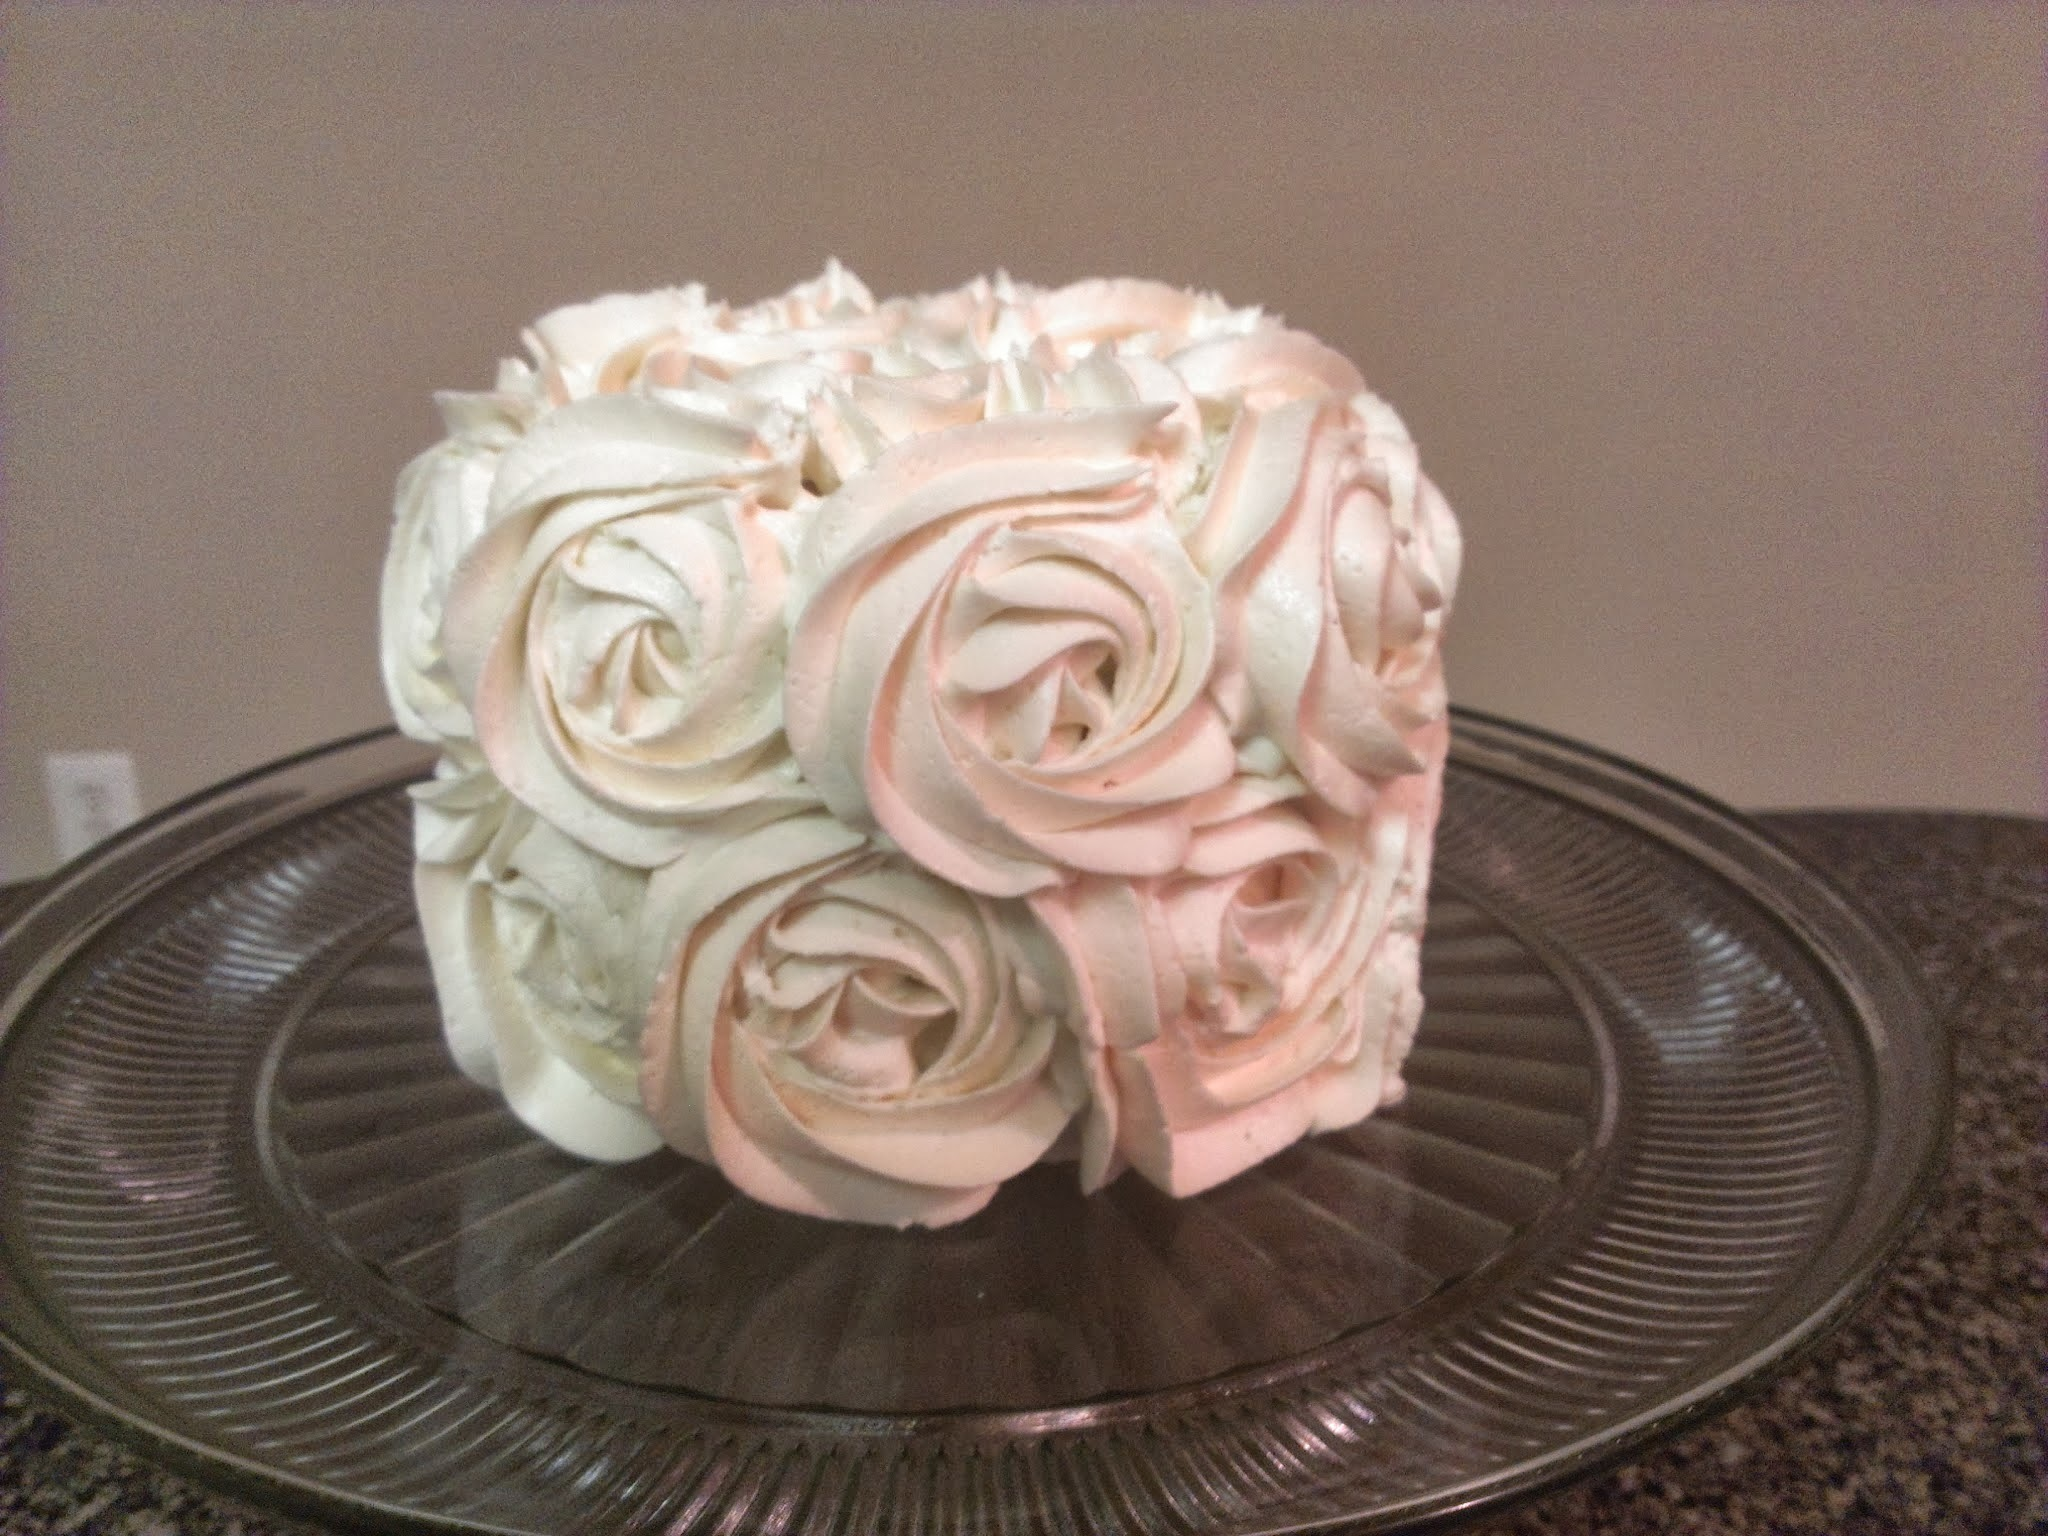 Chocolate Cake with Vanilla Buttercream Icing